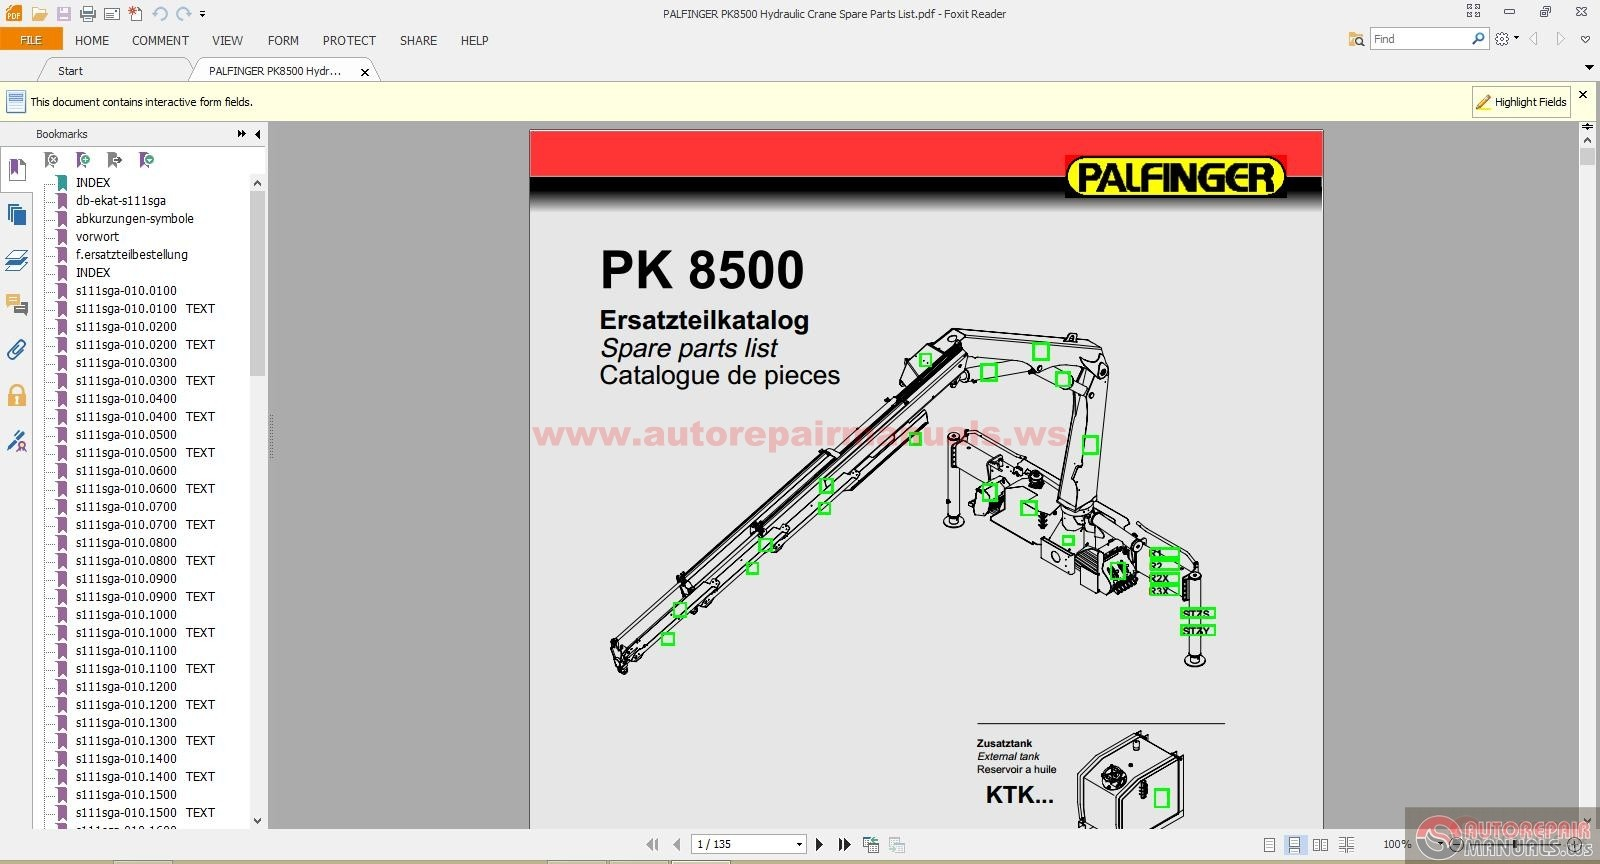 PALFINGER_PK8500_Hydraulic_Crane_Spare_Parts_List palfinger pk8500 hydraulic crane spare parts list auto repair palfinger crane wiring diagram at readyjetset.co